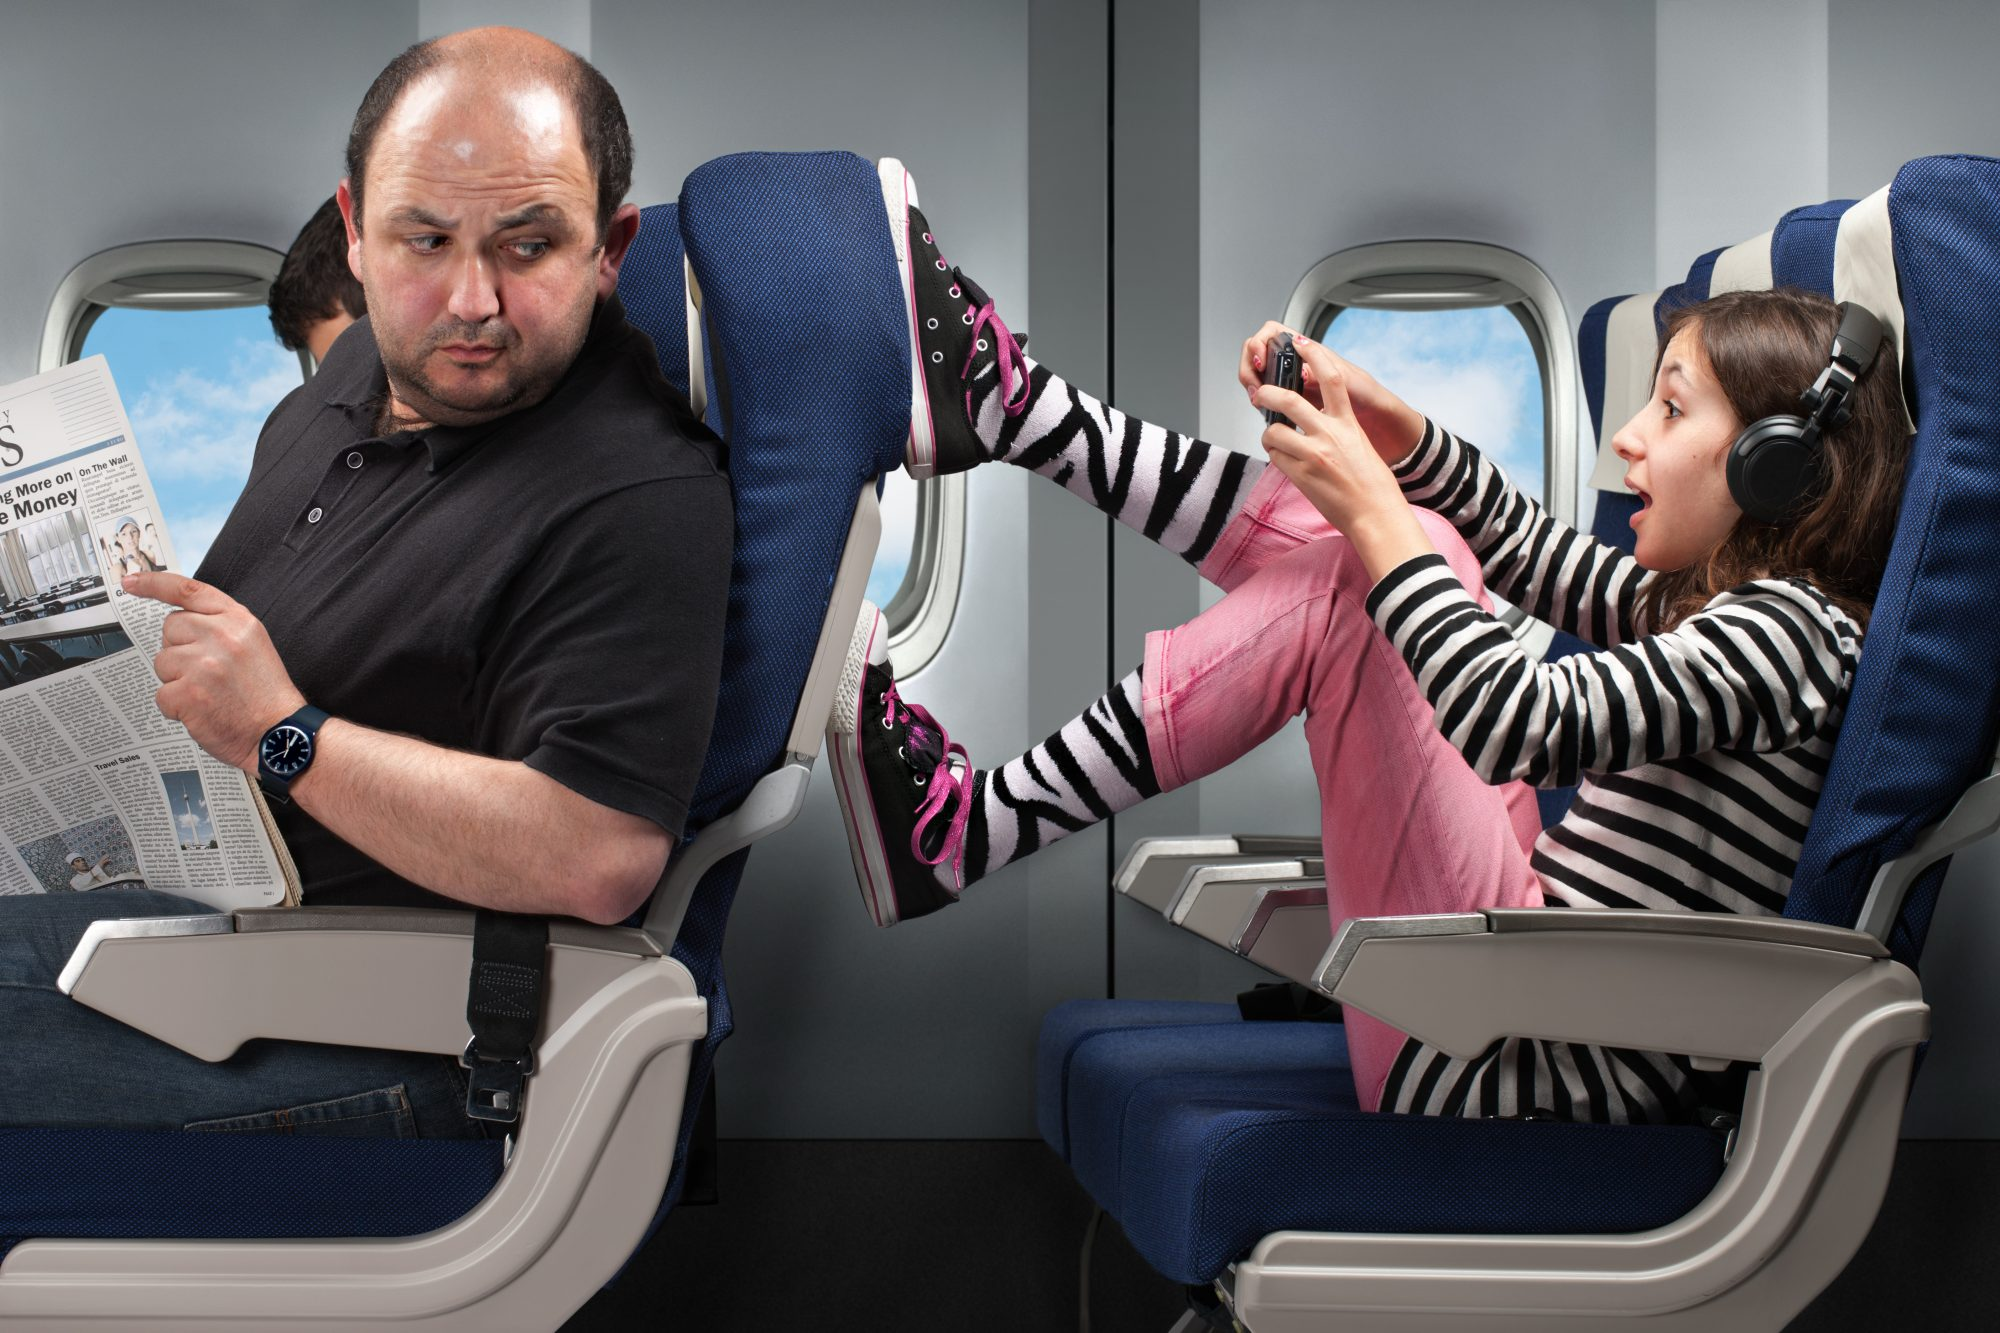 Girl with Feet Up on Airplane Seat